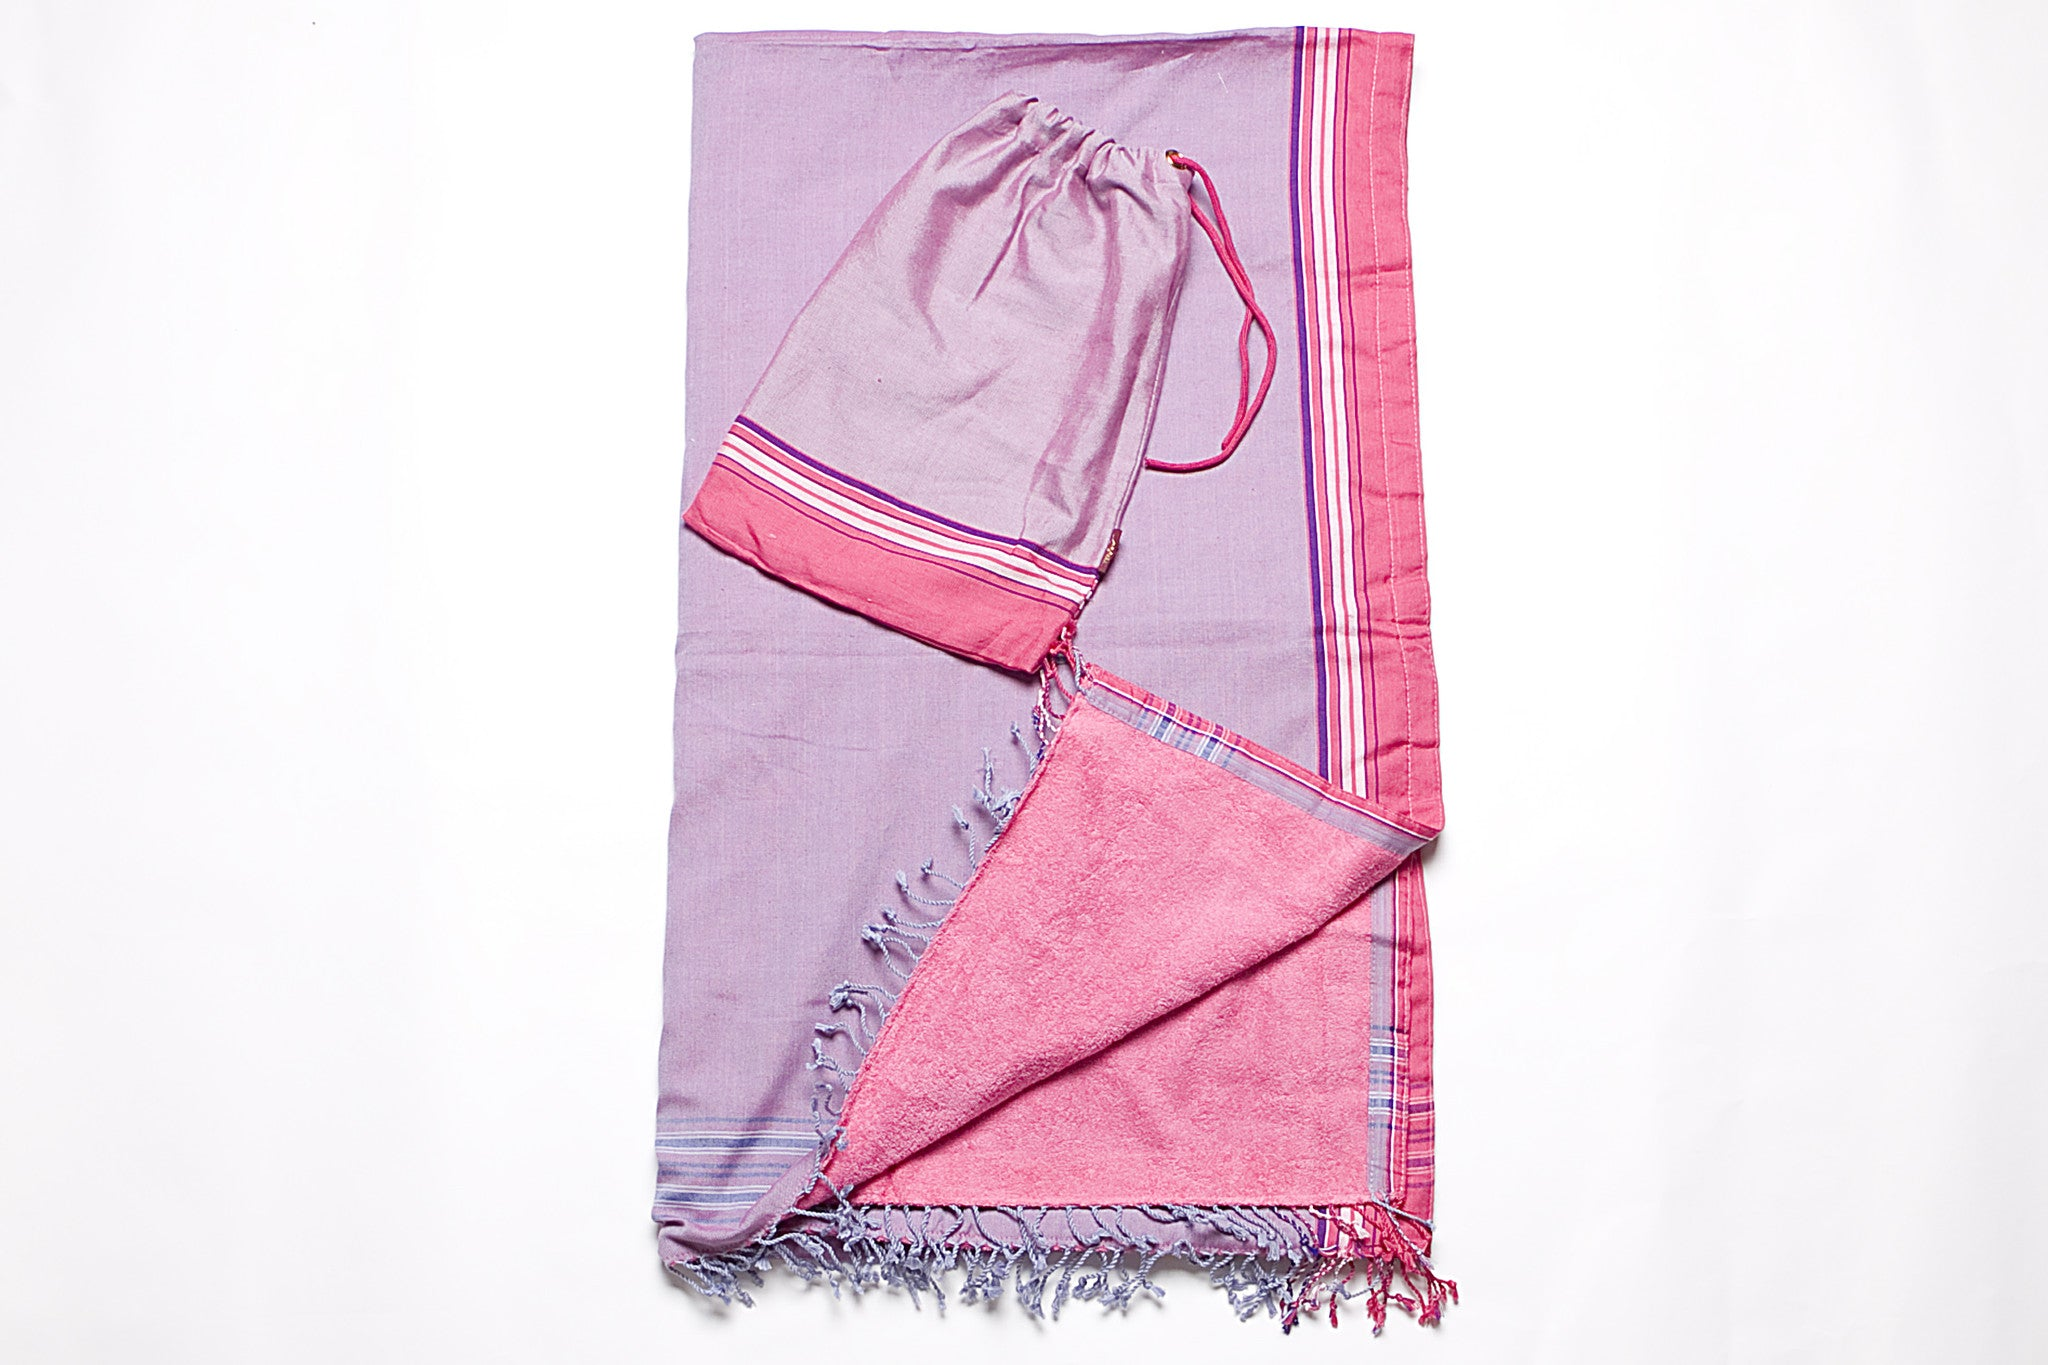 Fuchsia/Lavender Beach Towel - 2 piece set